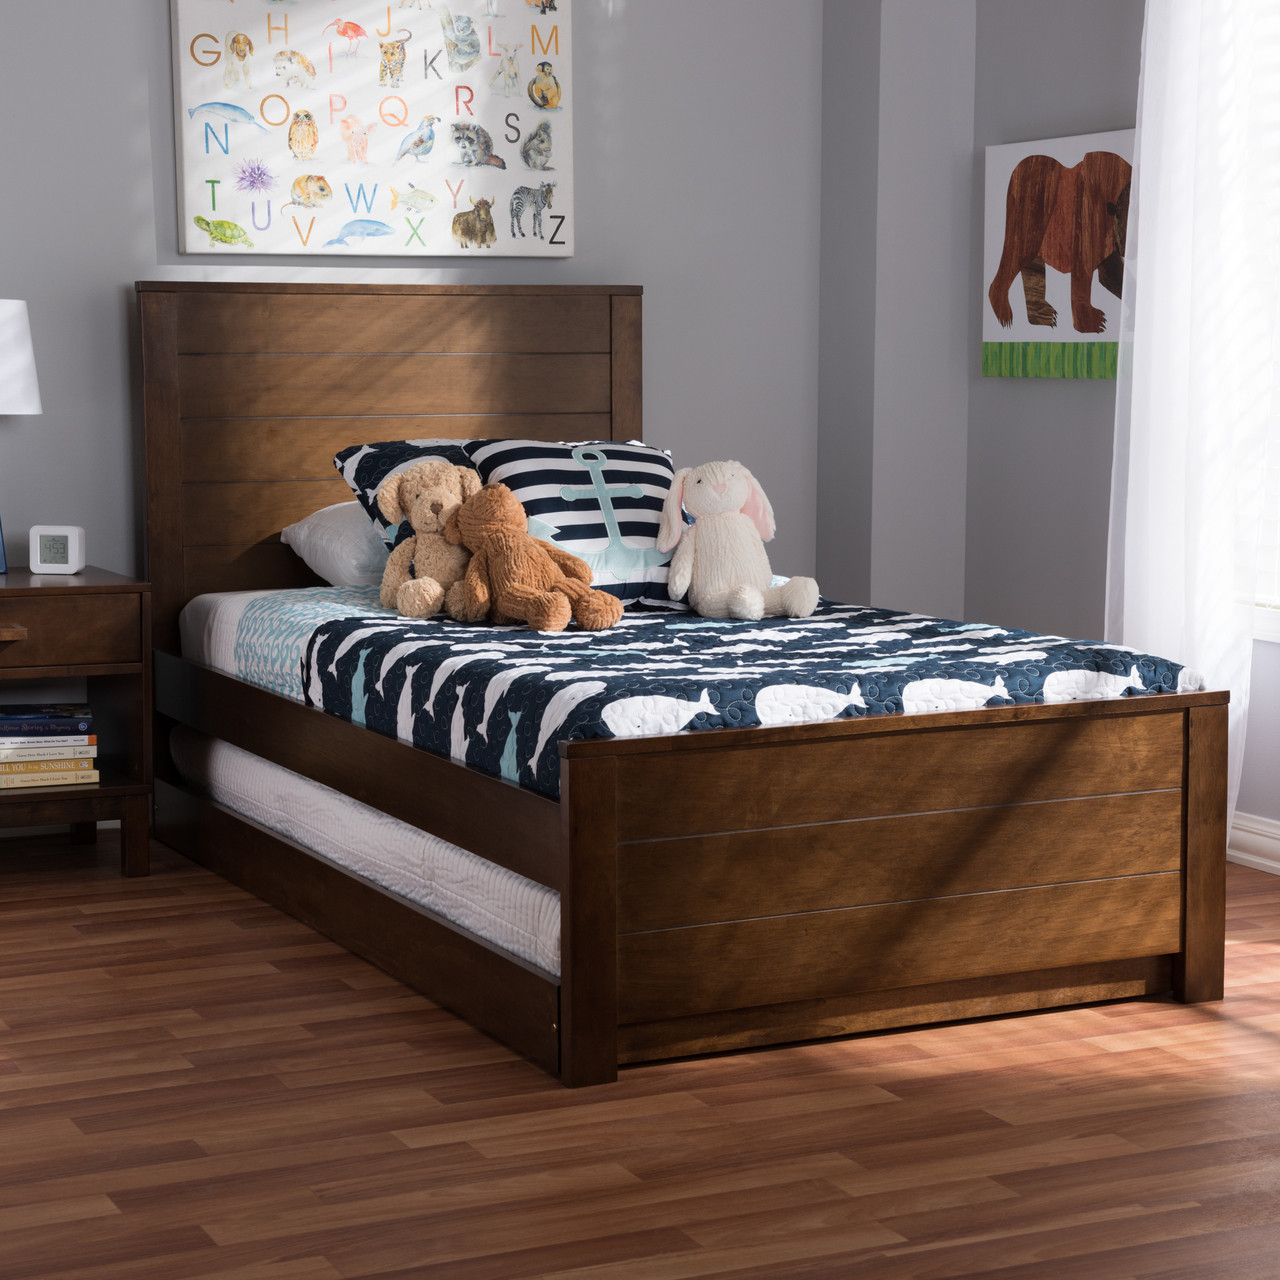 b165ce9caa66 Baxton Studio Catalina Modern Classic Mission Style Brown-Finished Wood Twin  Platform Bed with Trundle - DealBeds.com